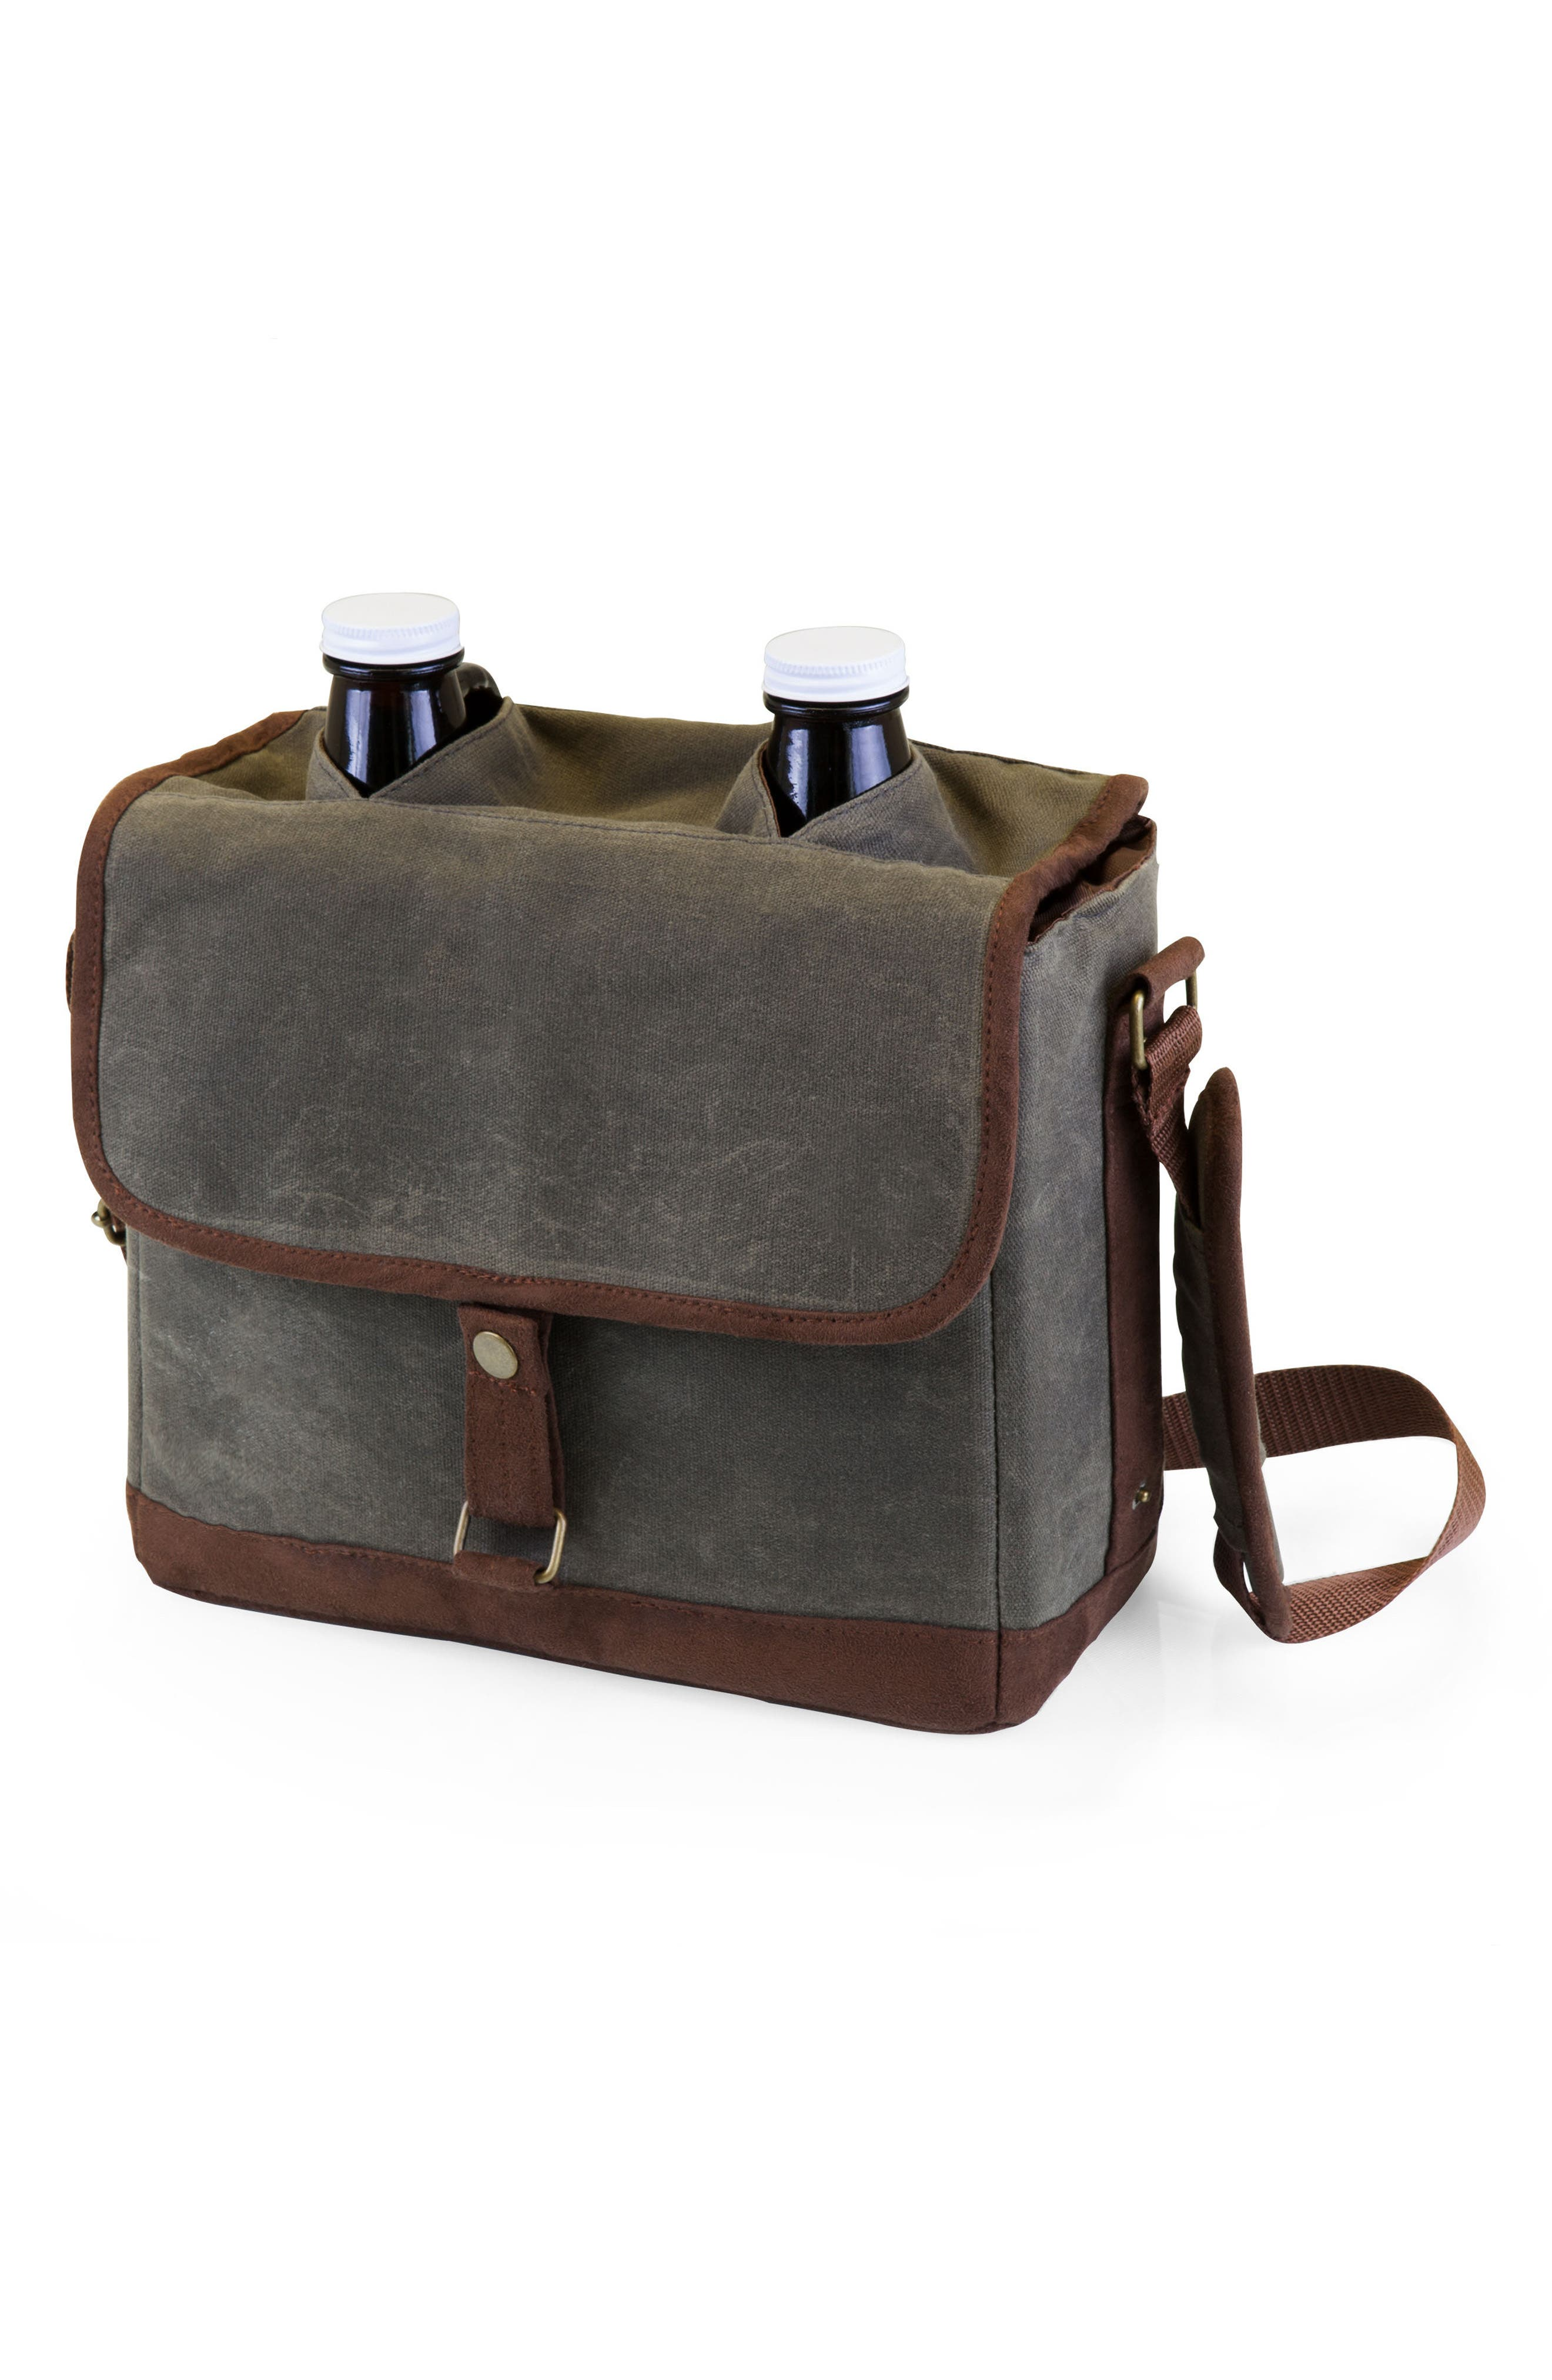 Insulated Double Growler Tote,                             Alternate thumbnail 4, color,                             Green/ Brown